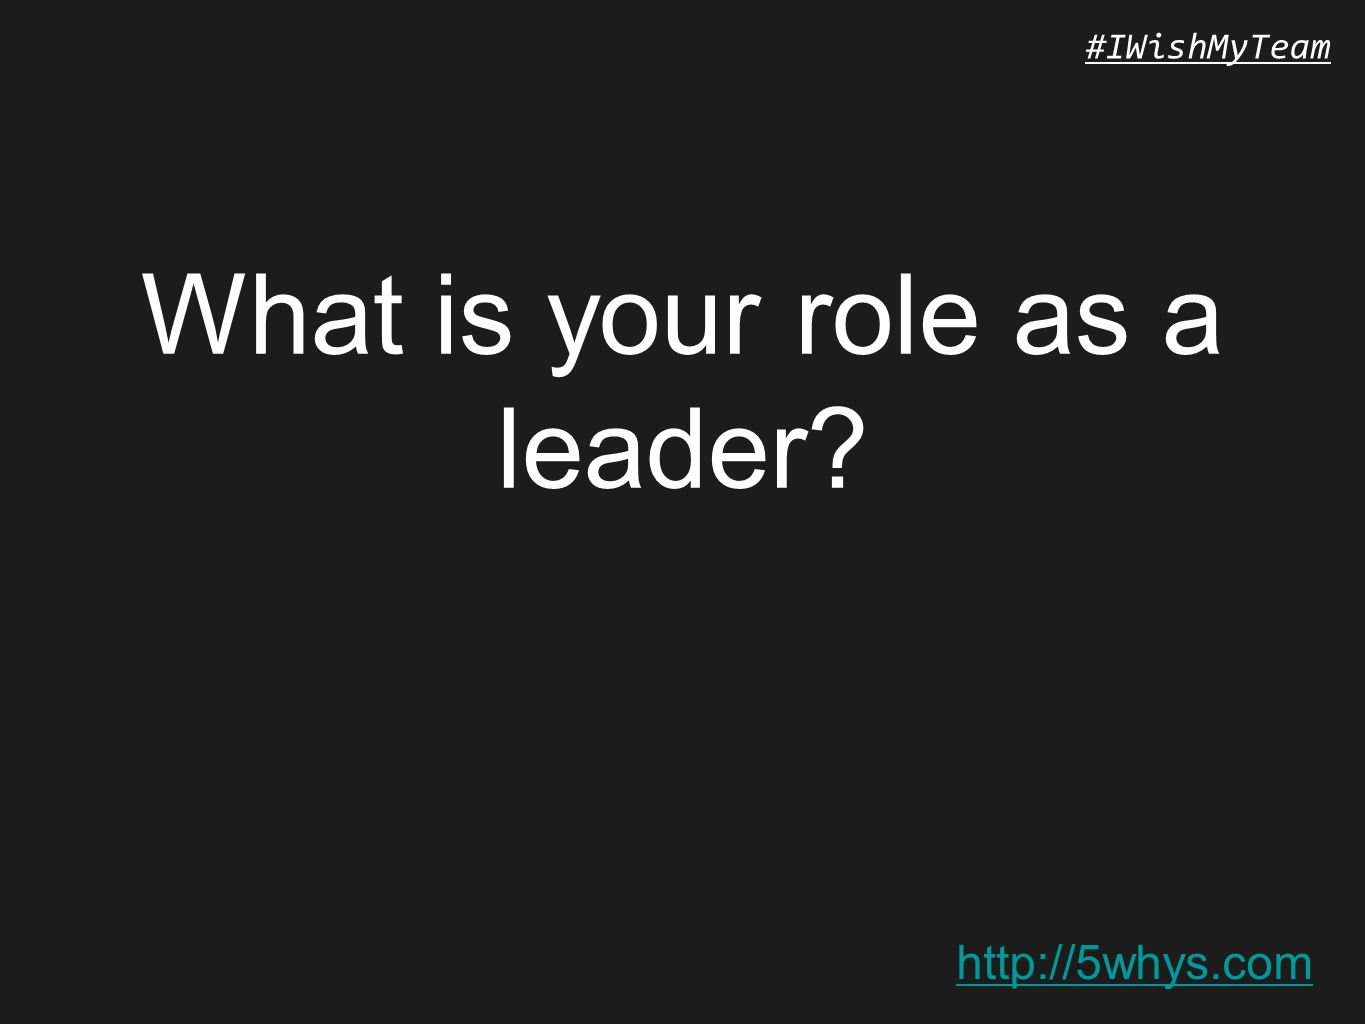 http://5whys.com #IWishMyTeam What is your role as a leader?